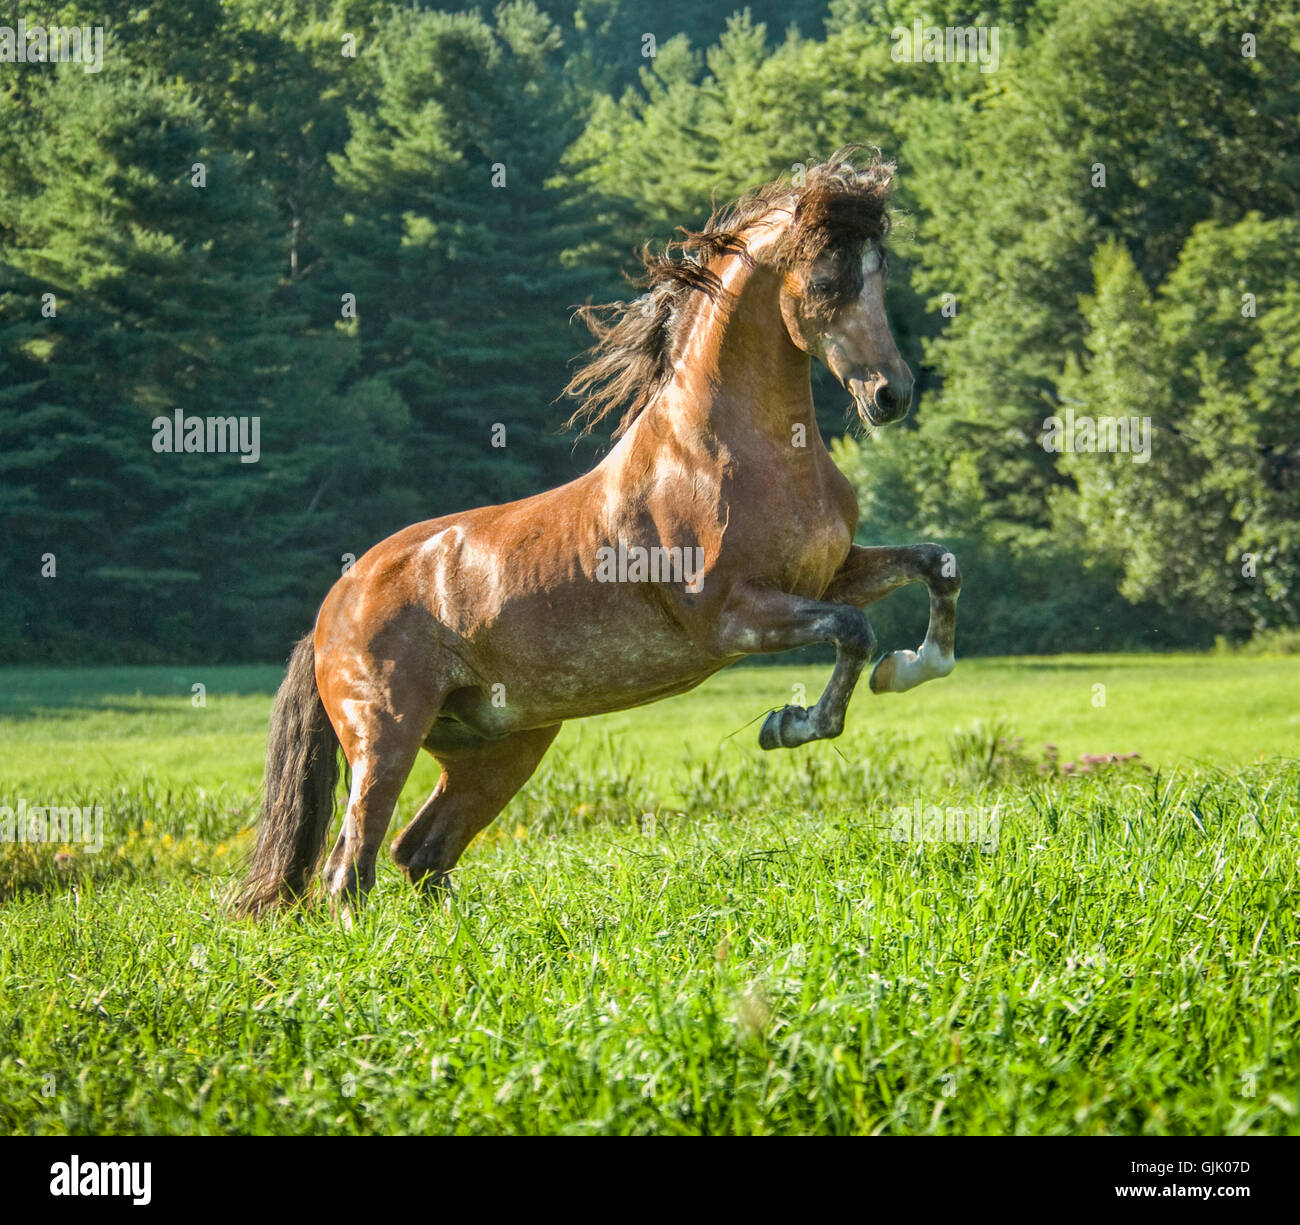 Andalusian horse stallion rearing up in tall grass pasture - Stock Image